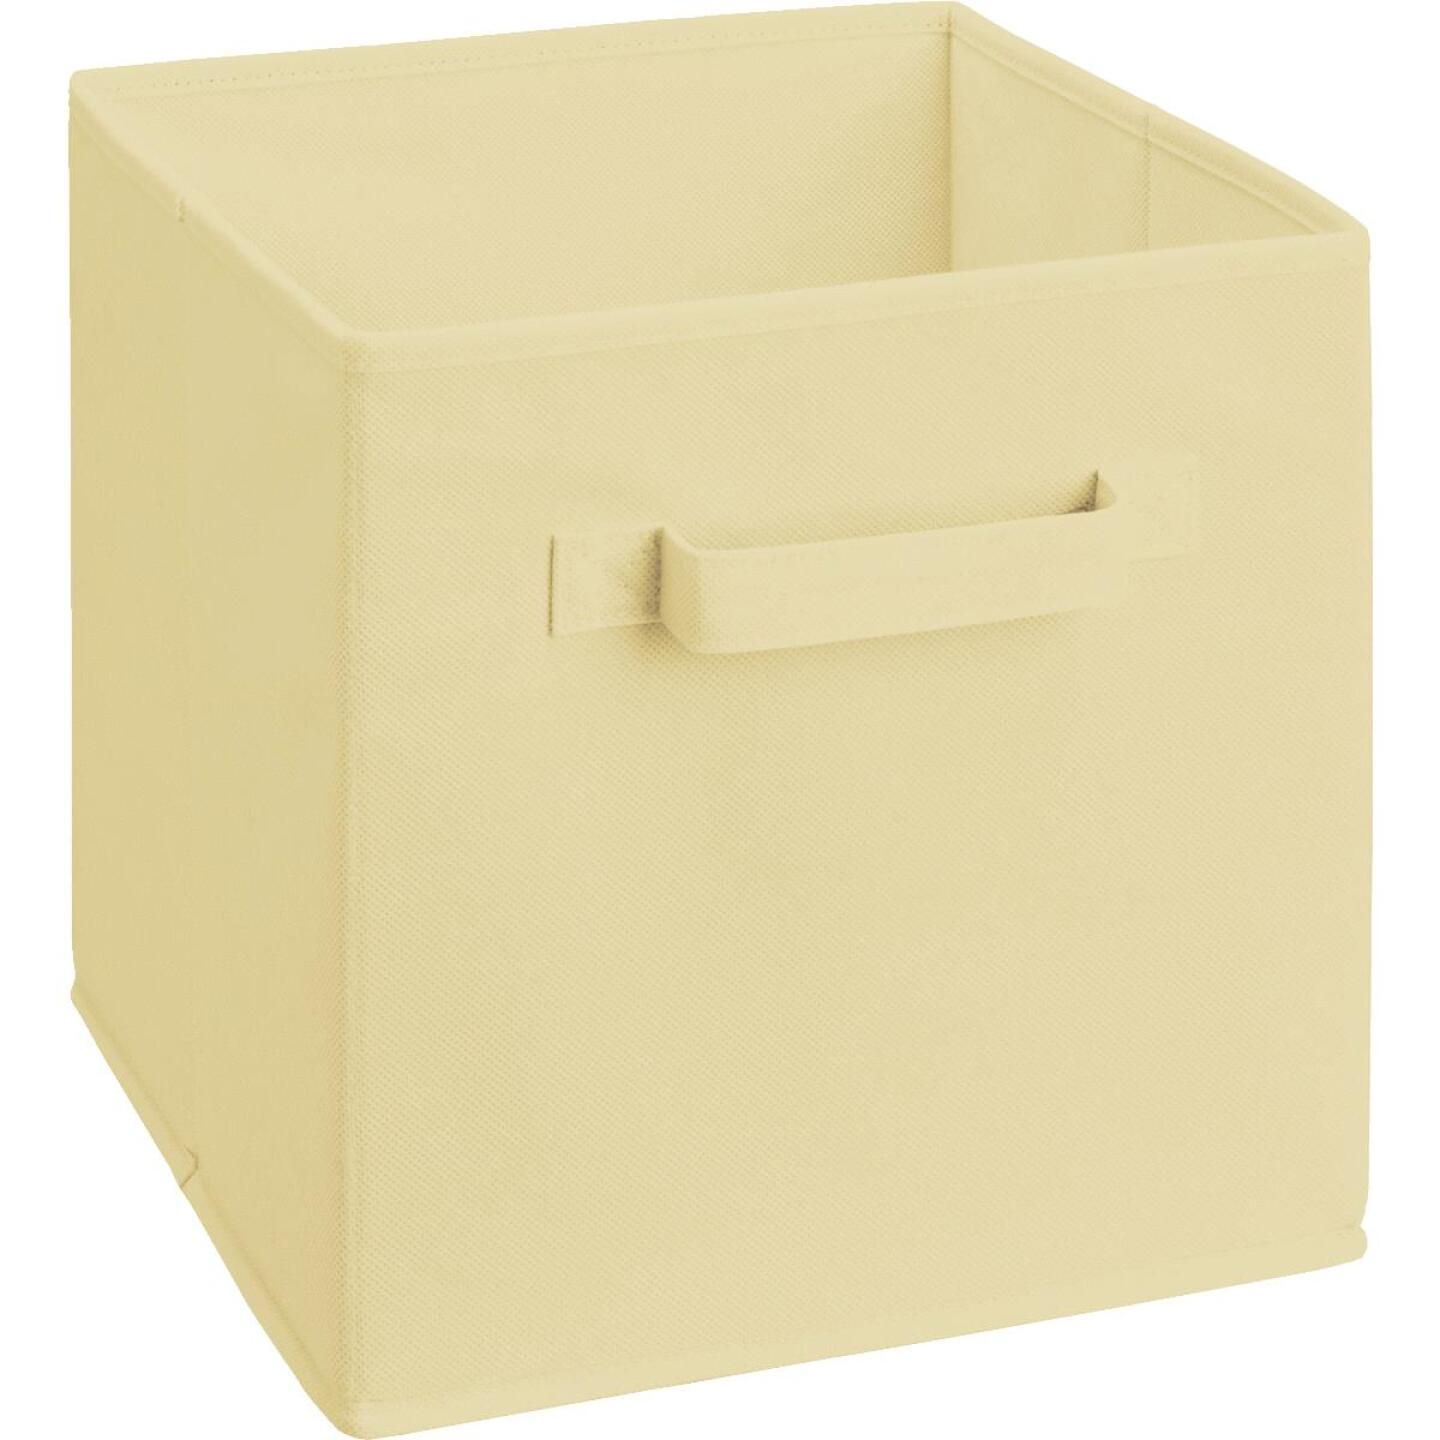 ClosetMaid Cubeicals 10.5 In. W. x 11 In. H. Natural Fabric Drawer Image 1